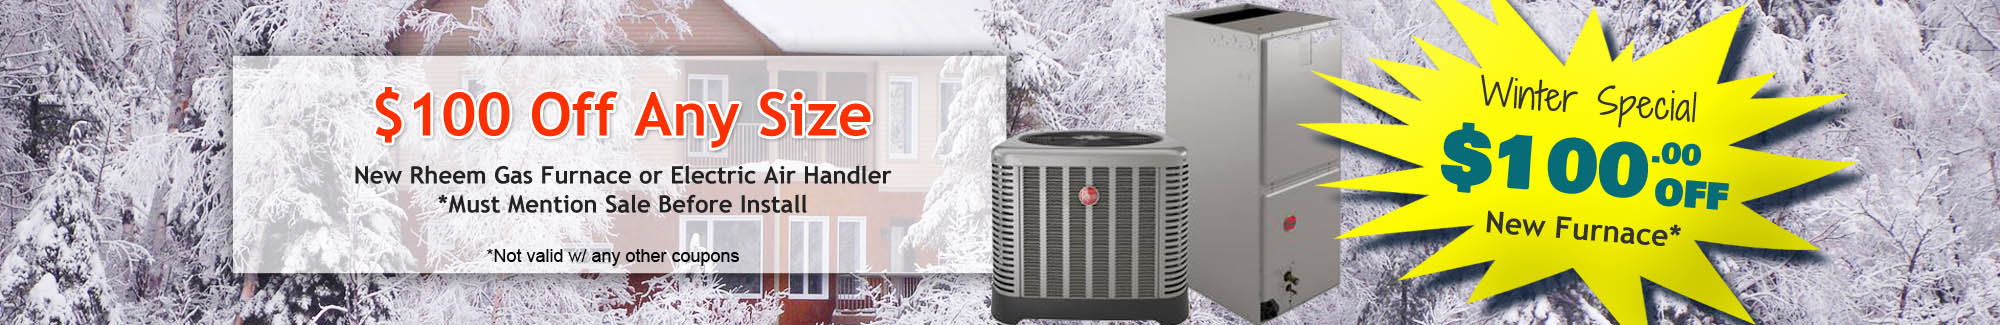 Save $100 when you install a new Rheem furnace with Appliance and Air Care Experts today!